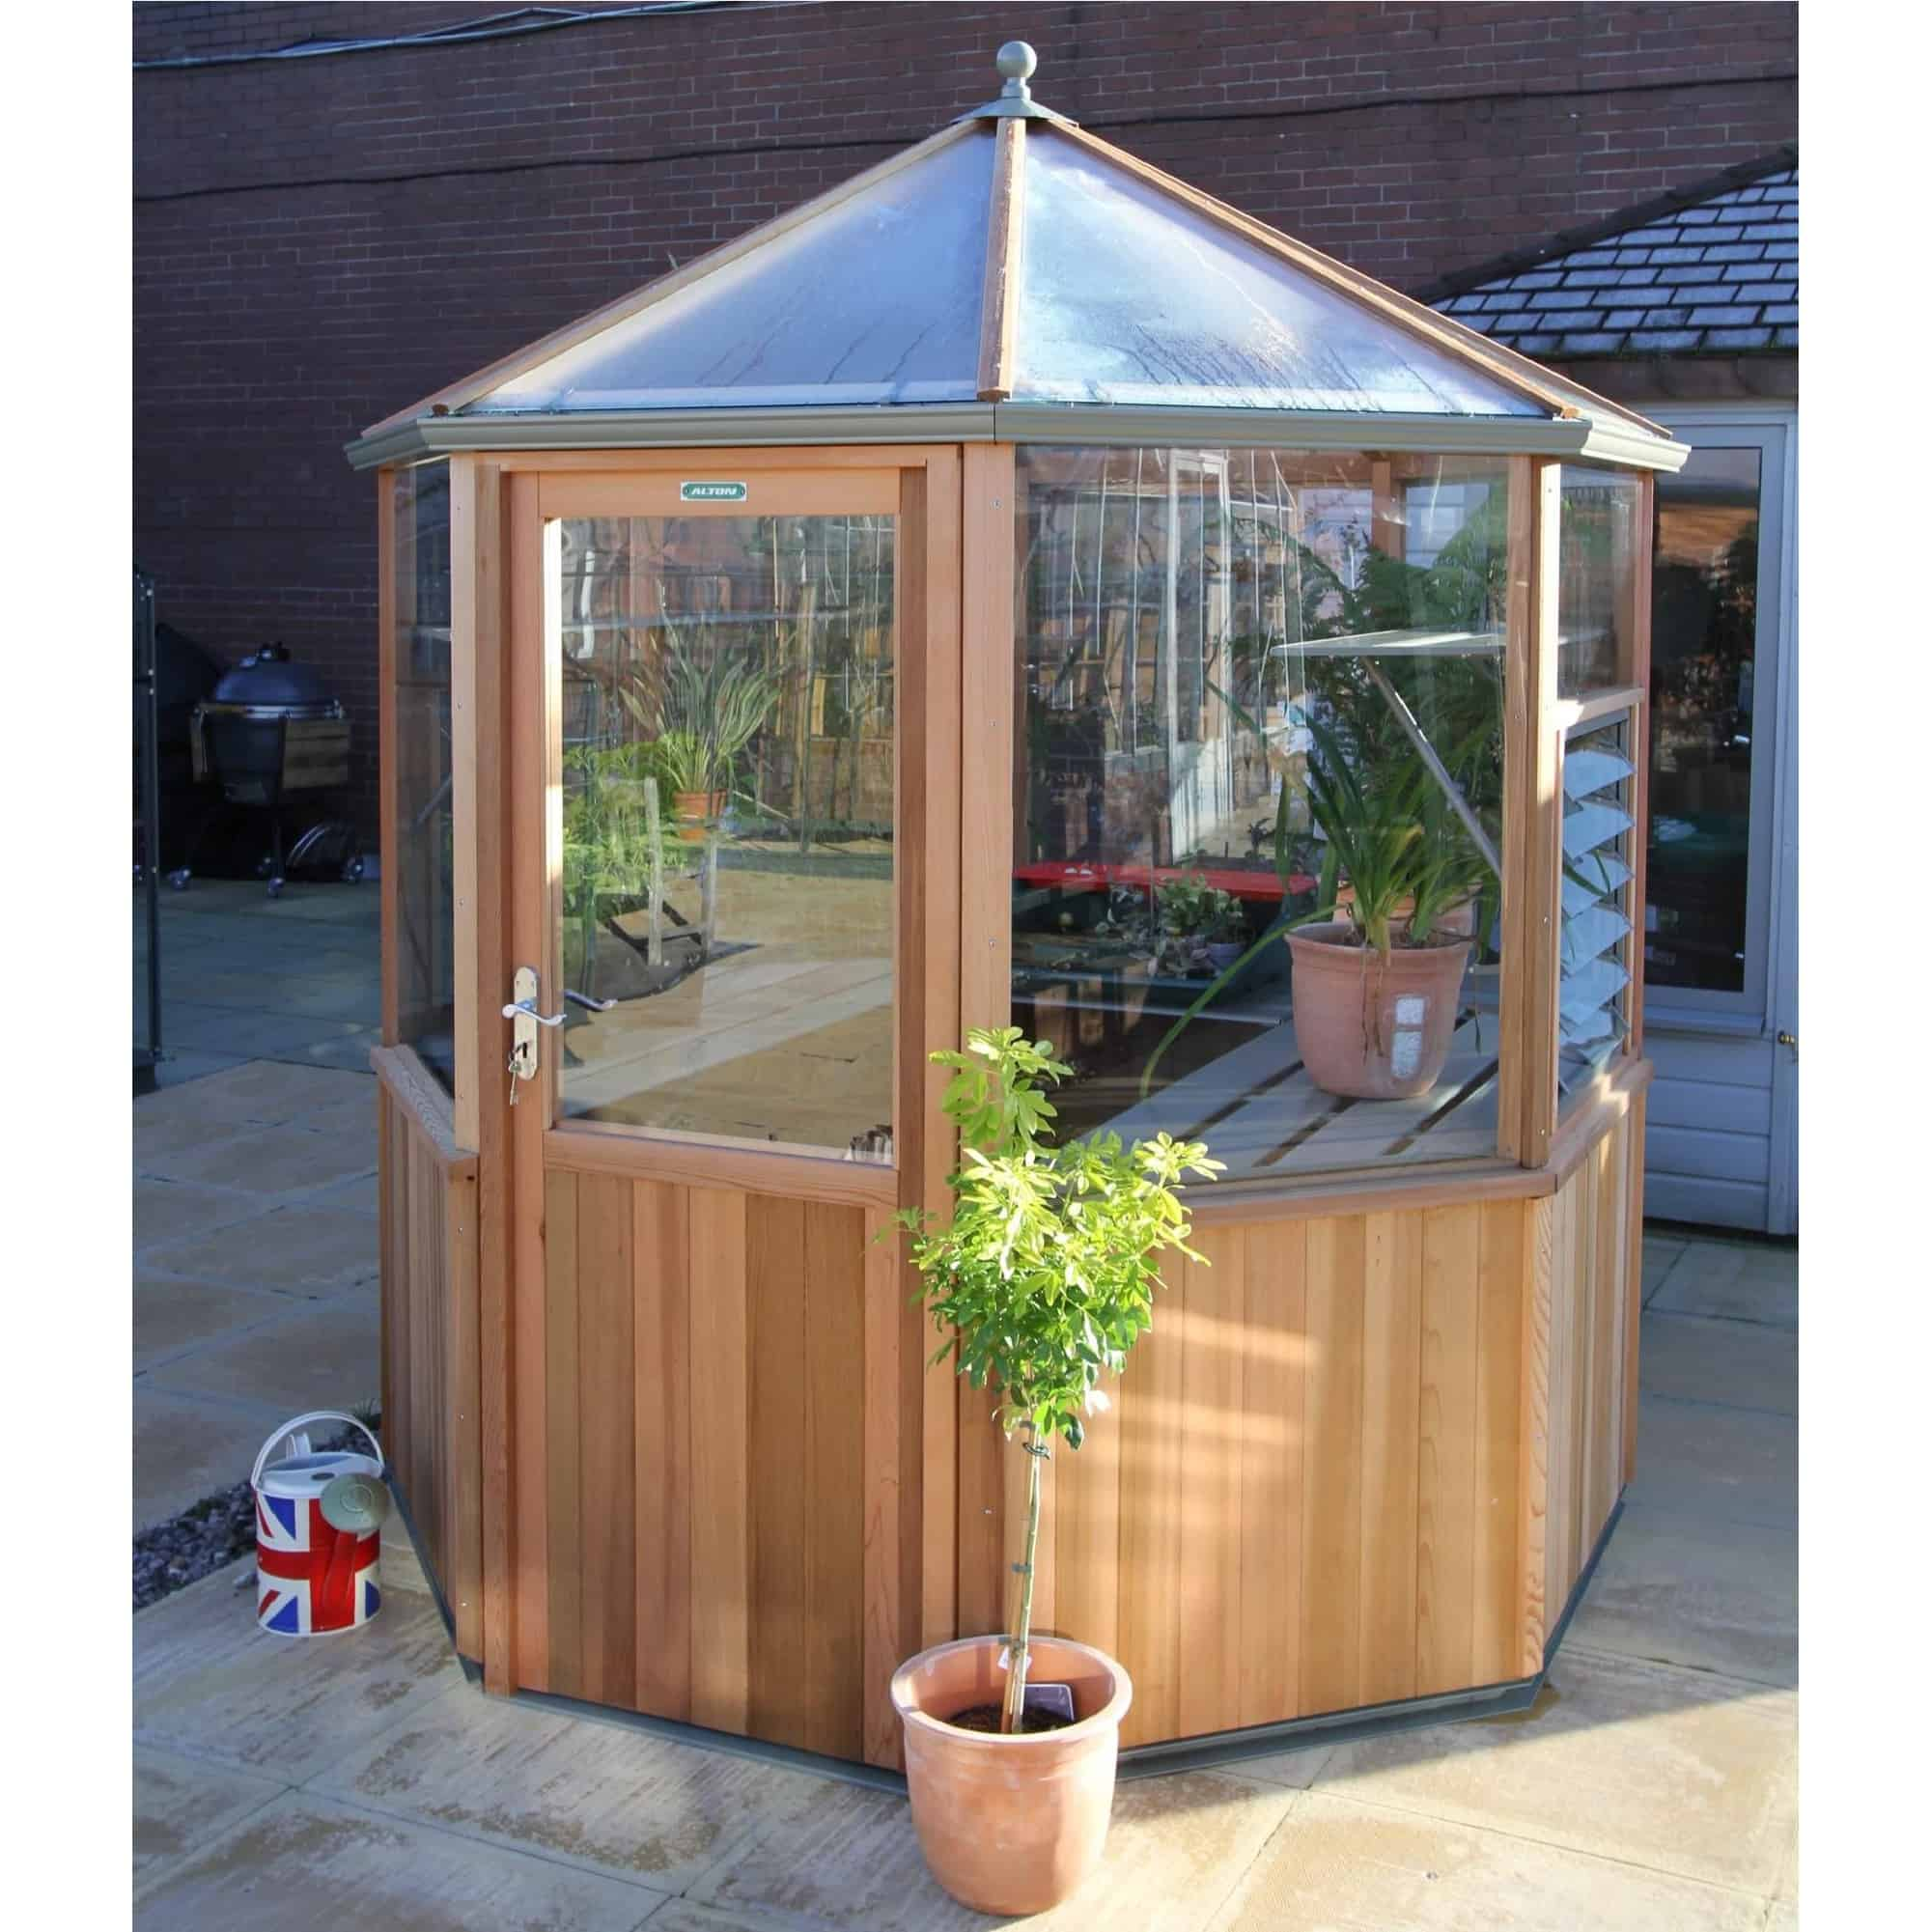 Alton Octagonal Greenhouse 6 x 6